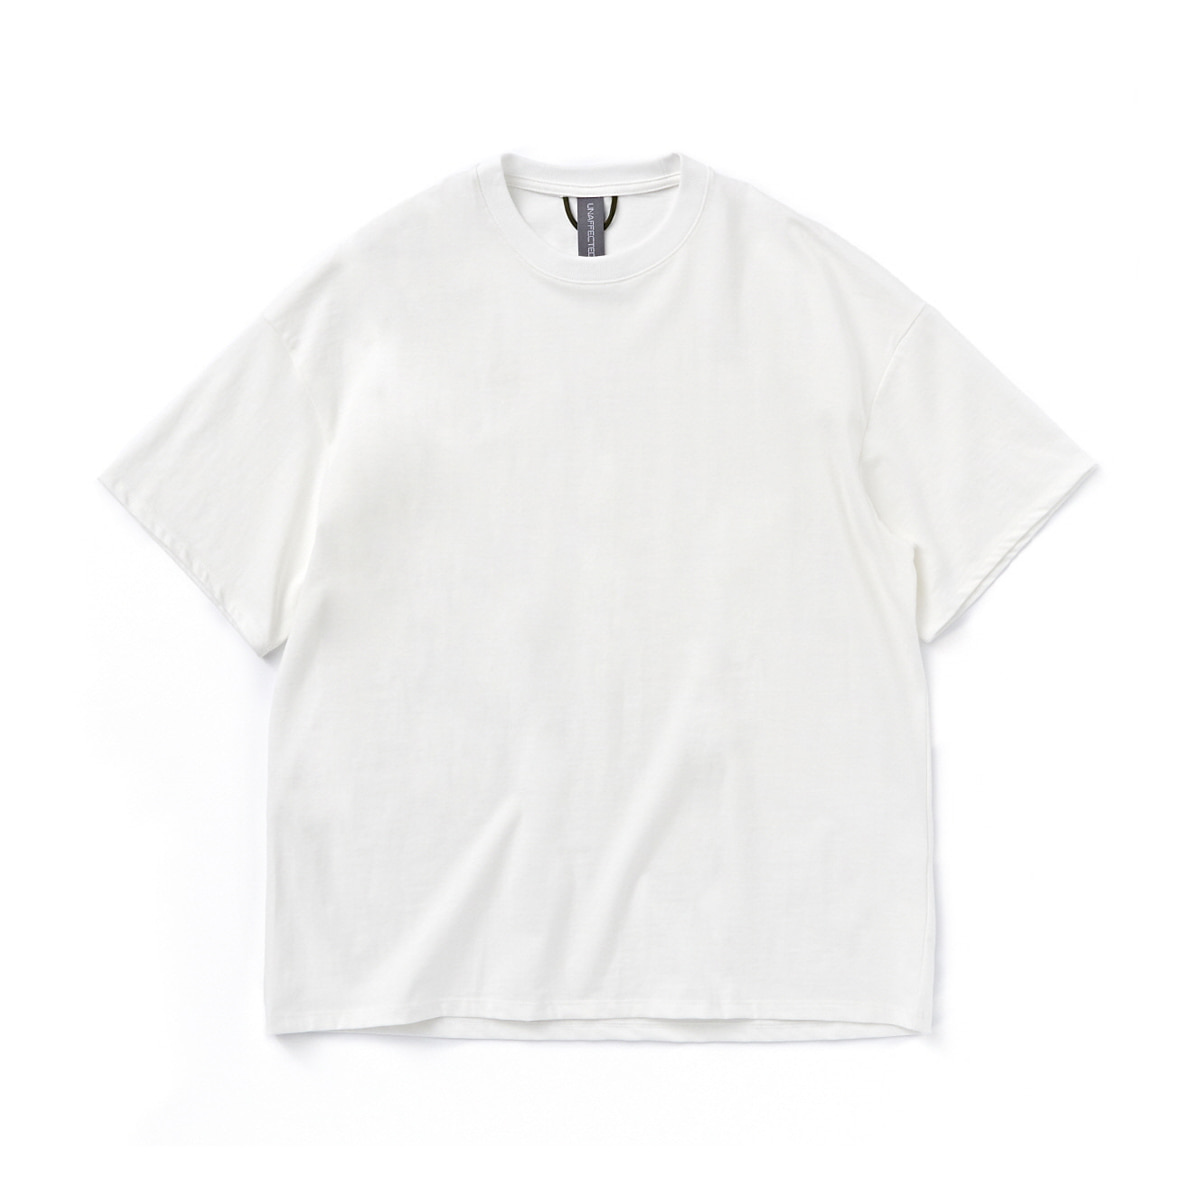 [UNAFFECTED] LOGO LABEL T-SHIRT 'WHITE'